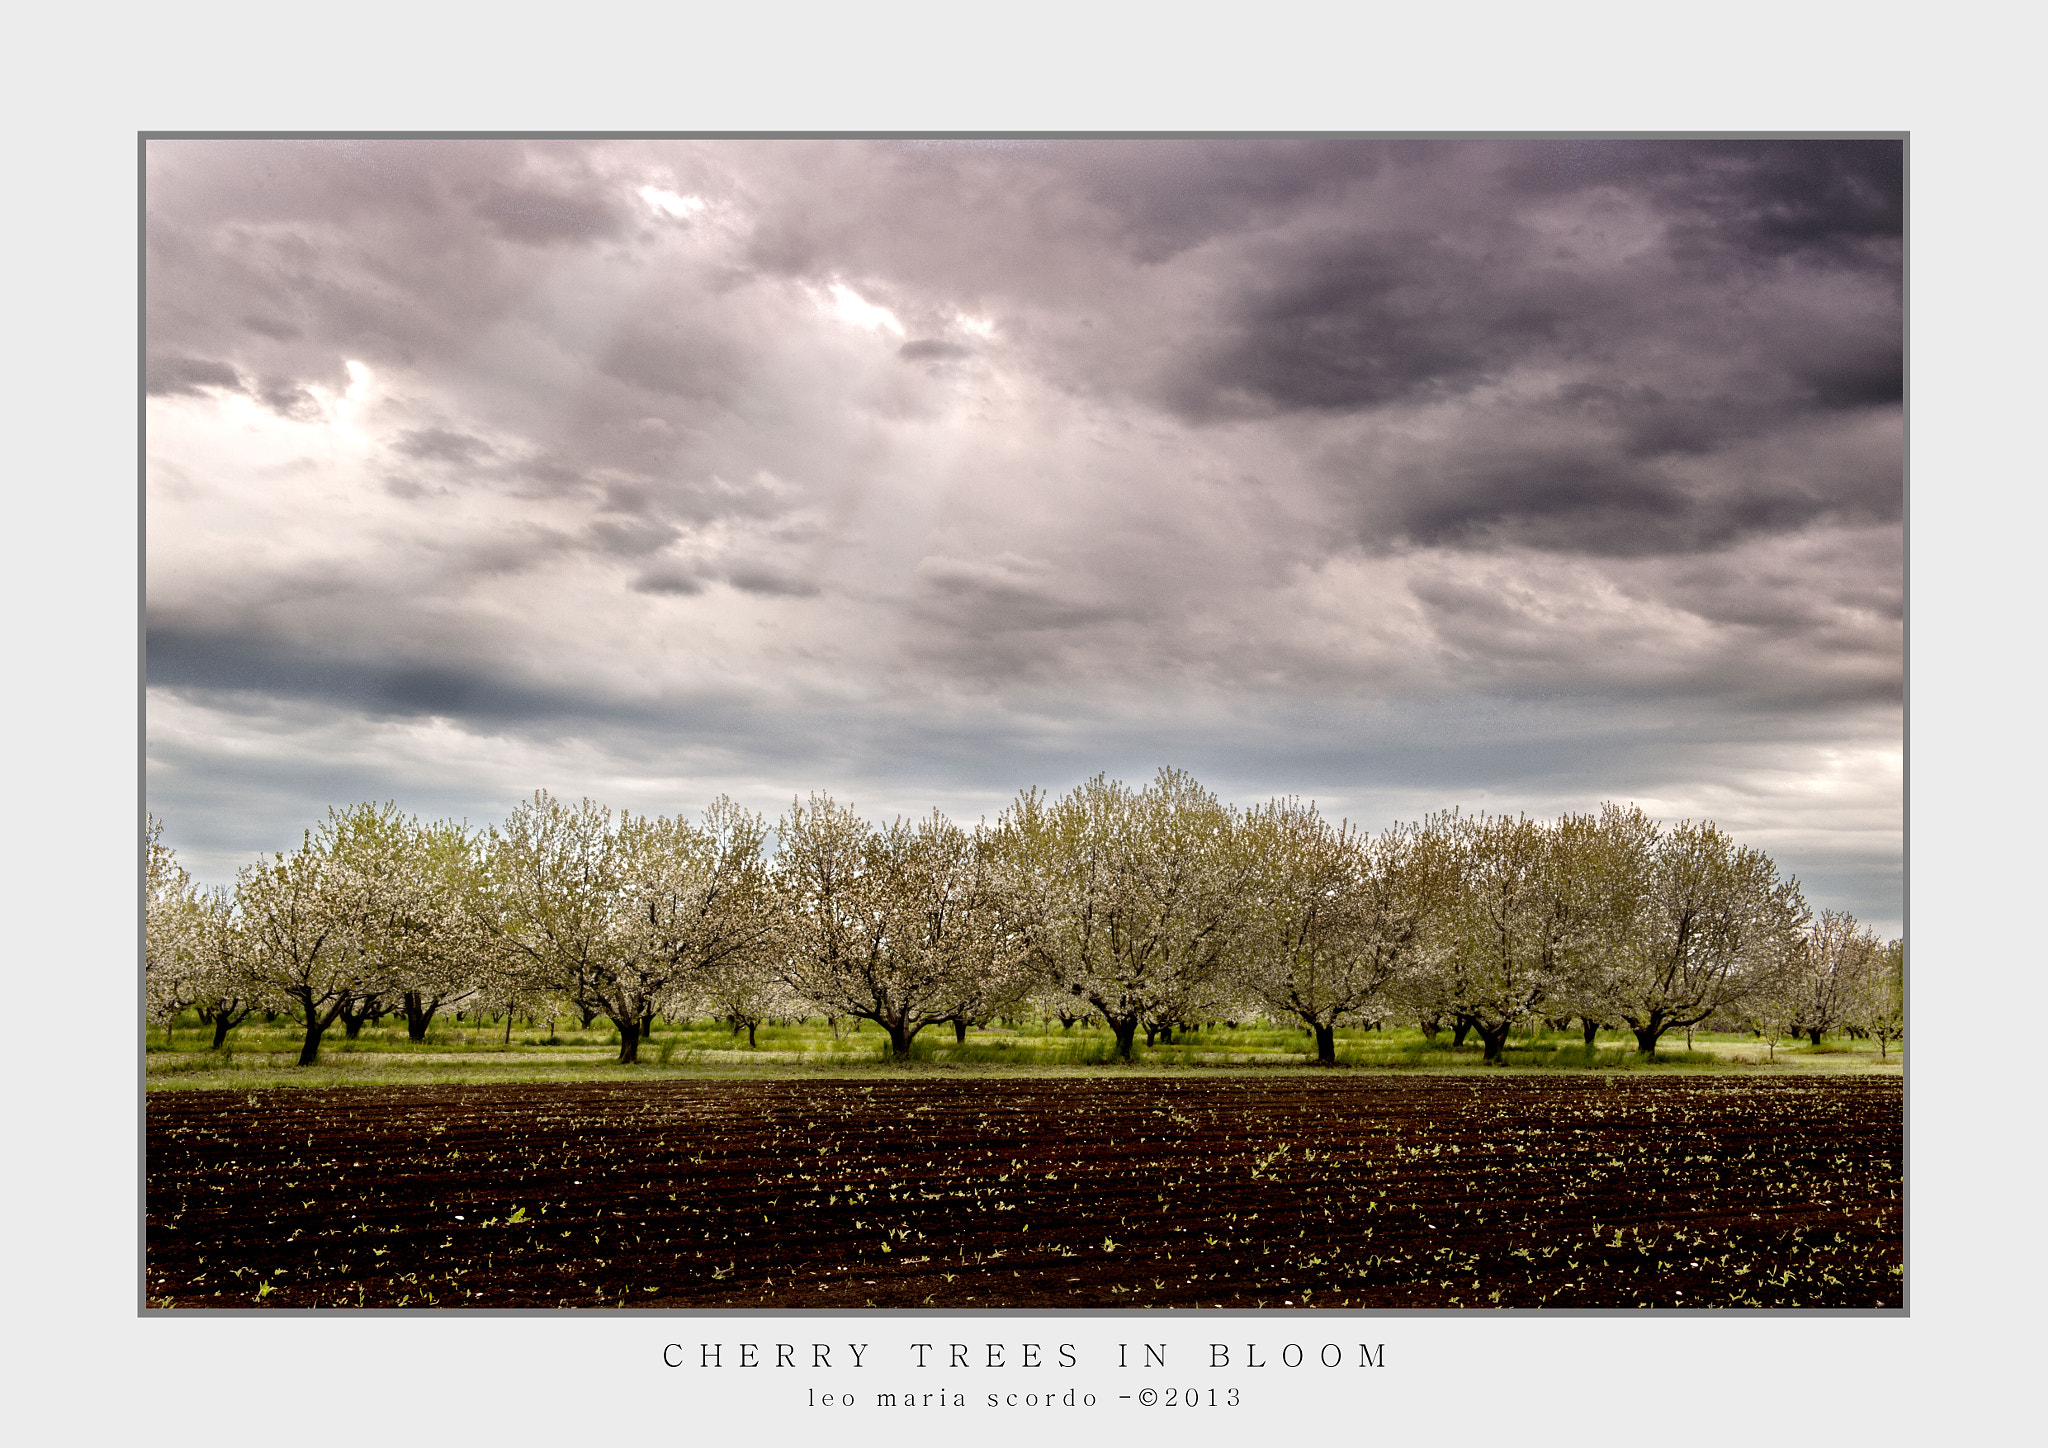 Photograph CHERRY TREES IN BLOOM by Leo Maria Scordo on 500px